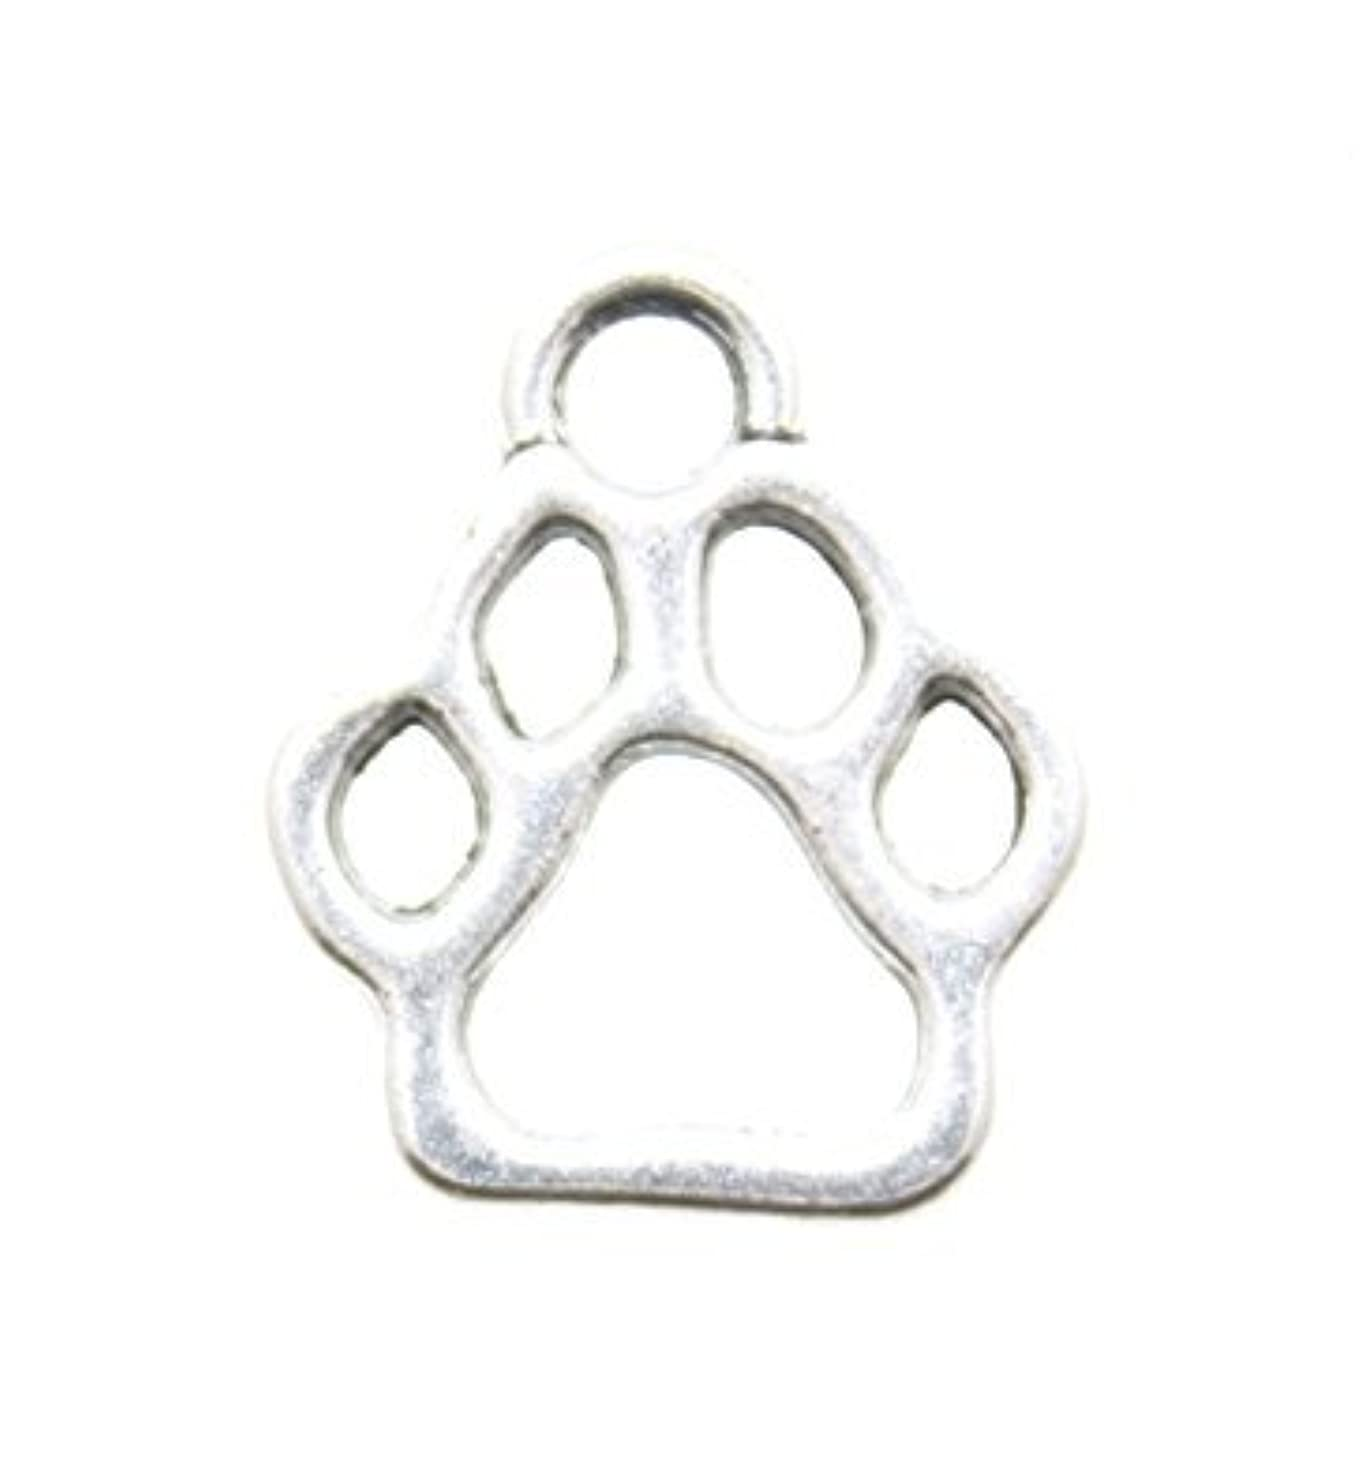 AnnaKJewels 40 Pieces Dog Paw Charms, Silver Tone, Size 24mmx17mm